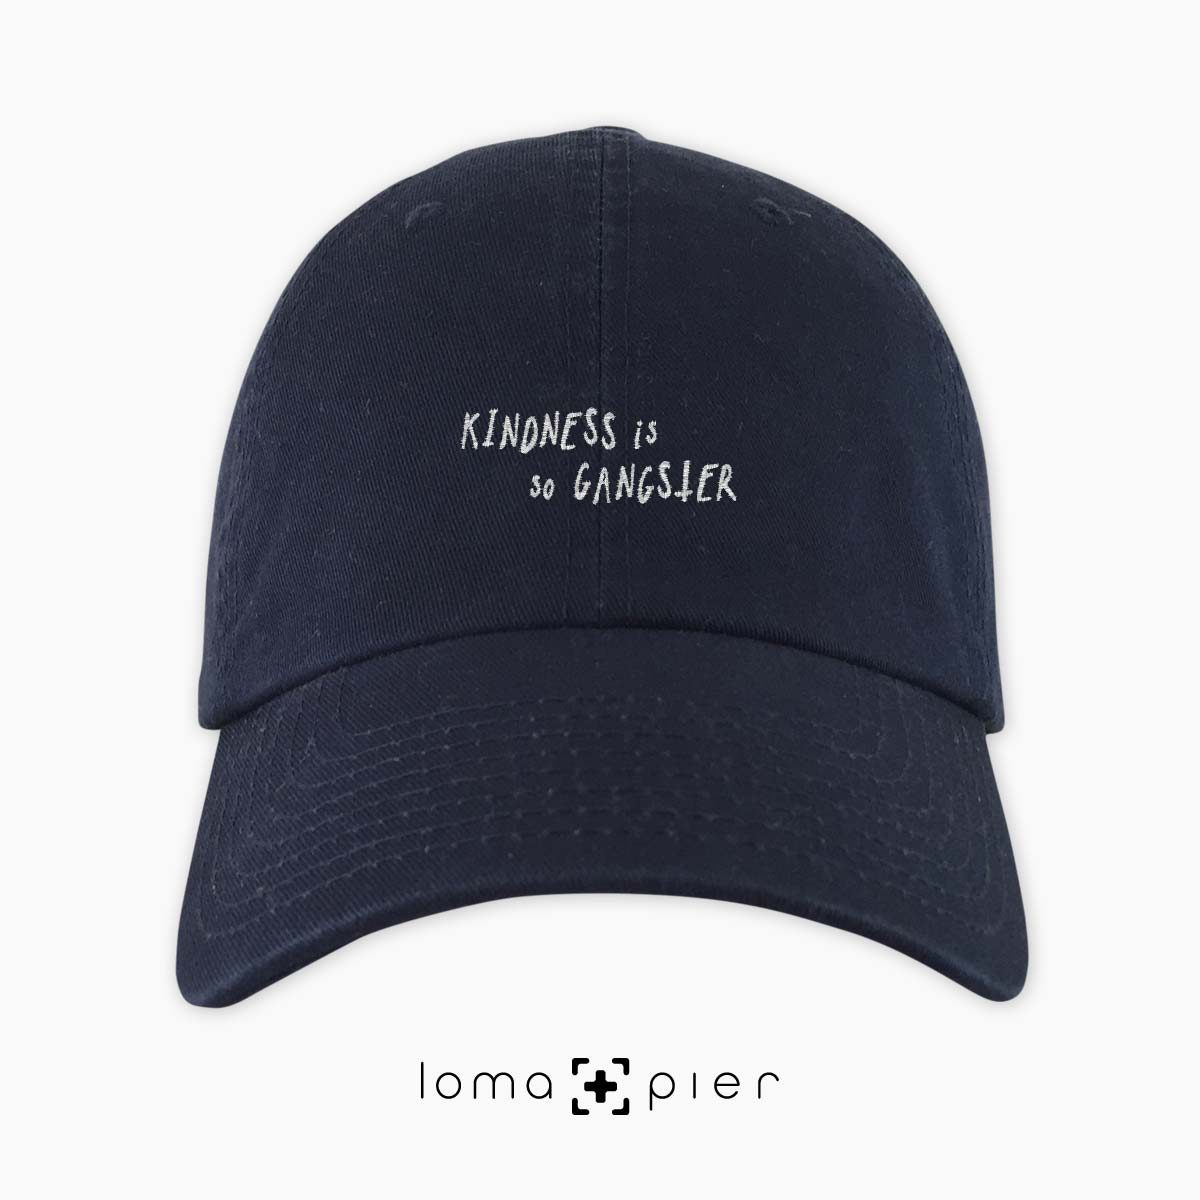 KINDNESS IS SO GANGSTER typography embroidered on a navy blue unstructured dad hat with white thread by loma+pier hat store made in the USA